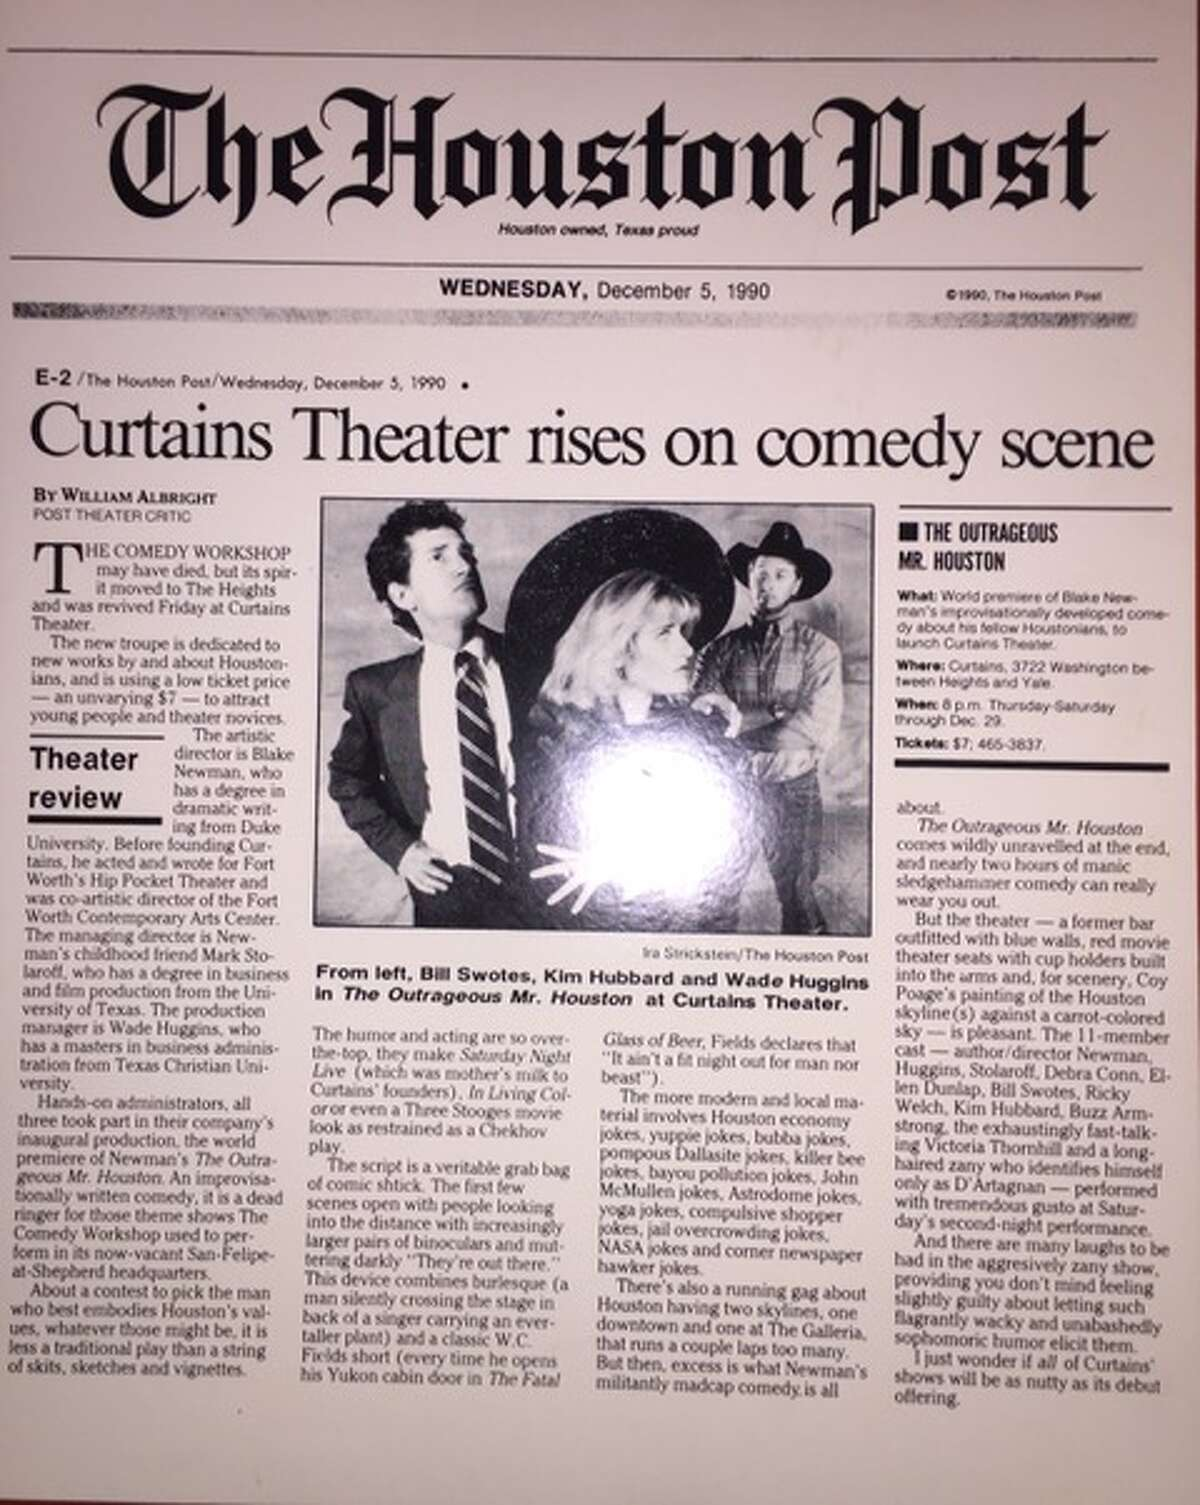 An old Houston Post clipping about the Curtains Theater which Mark Stolaroff co-founded.